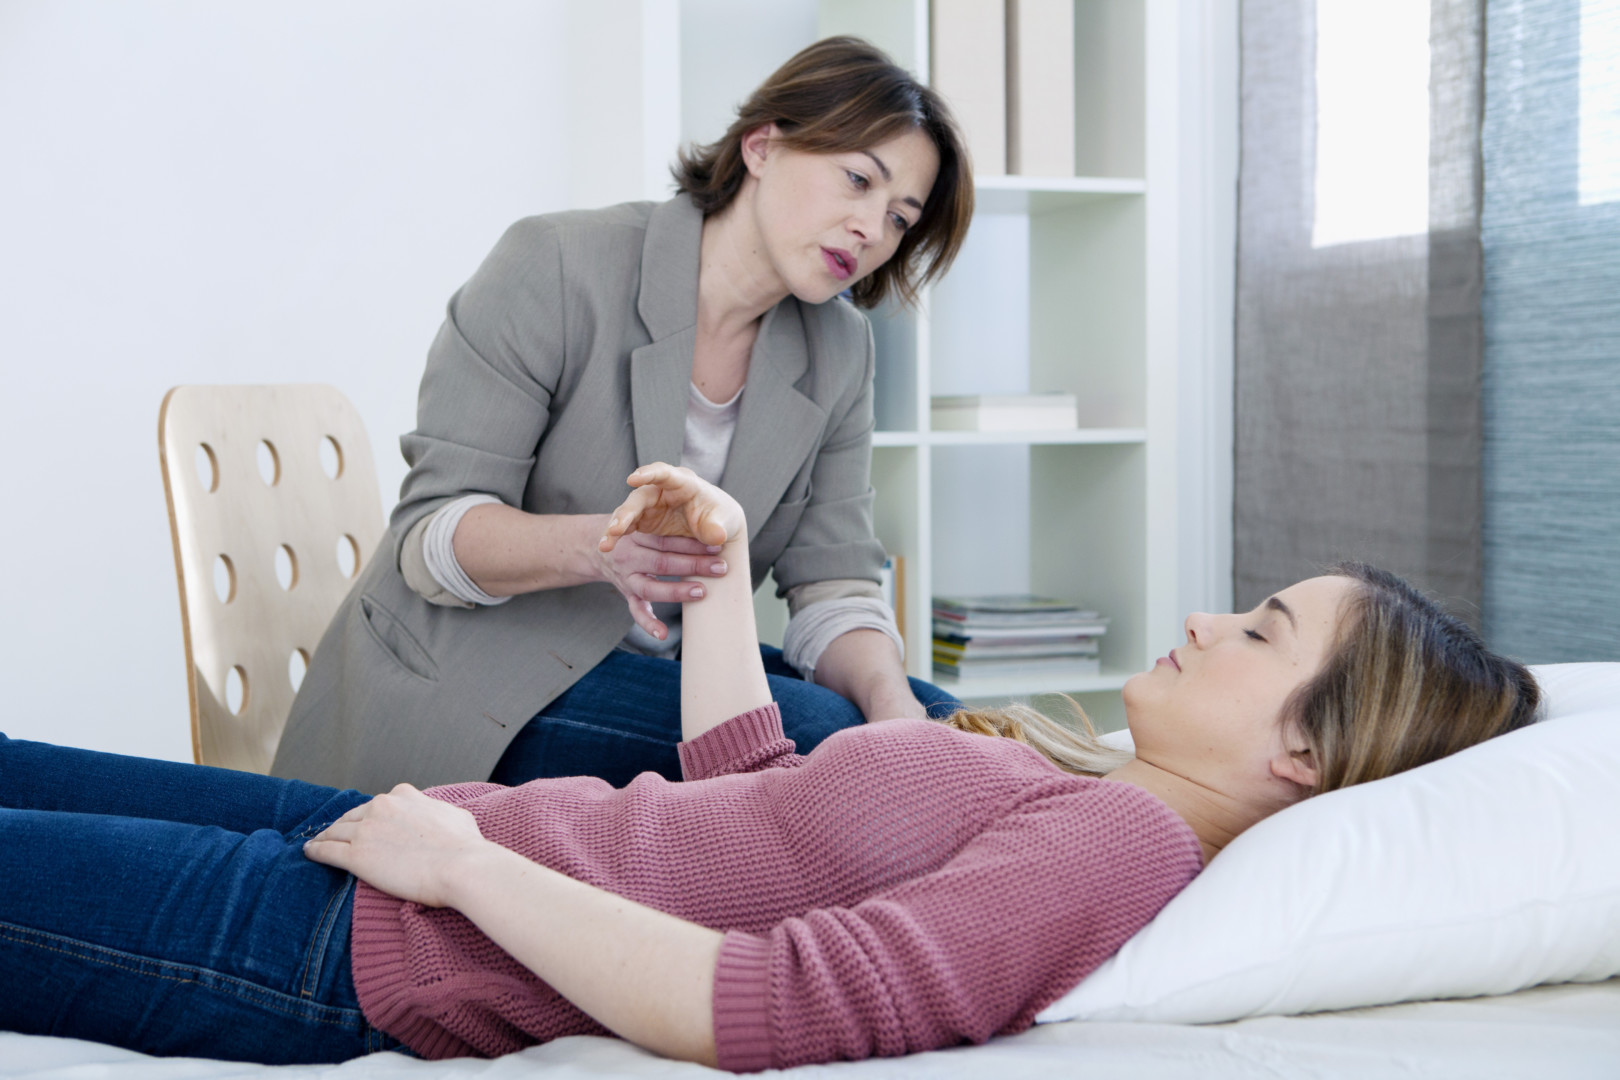 hypnosis for ibs Have you been diagnosed with ibs and are you still researching for an effective treatment do you have severe abdominal pain, urgency, diarrhea or constipation and.